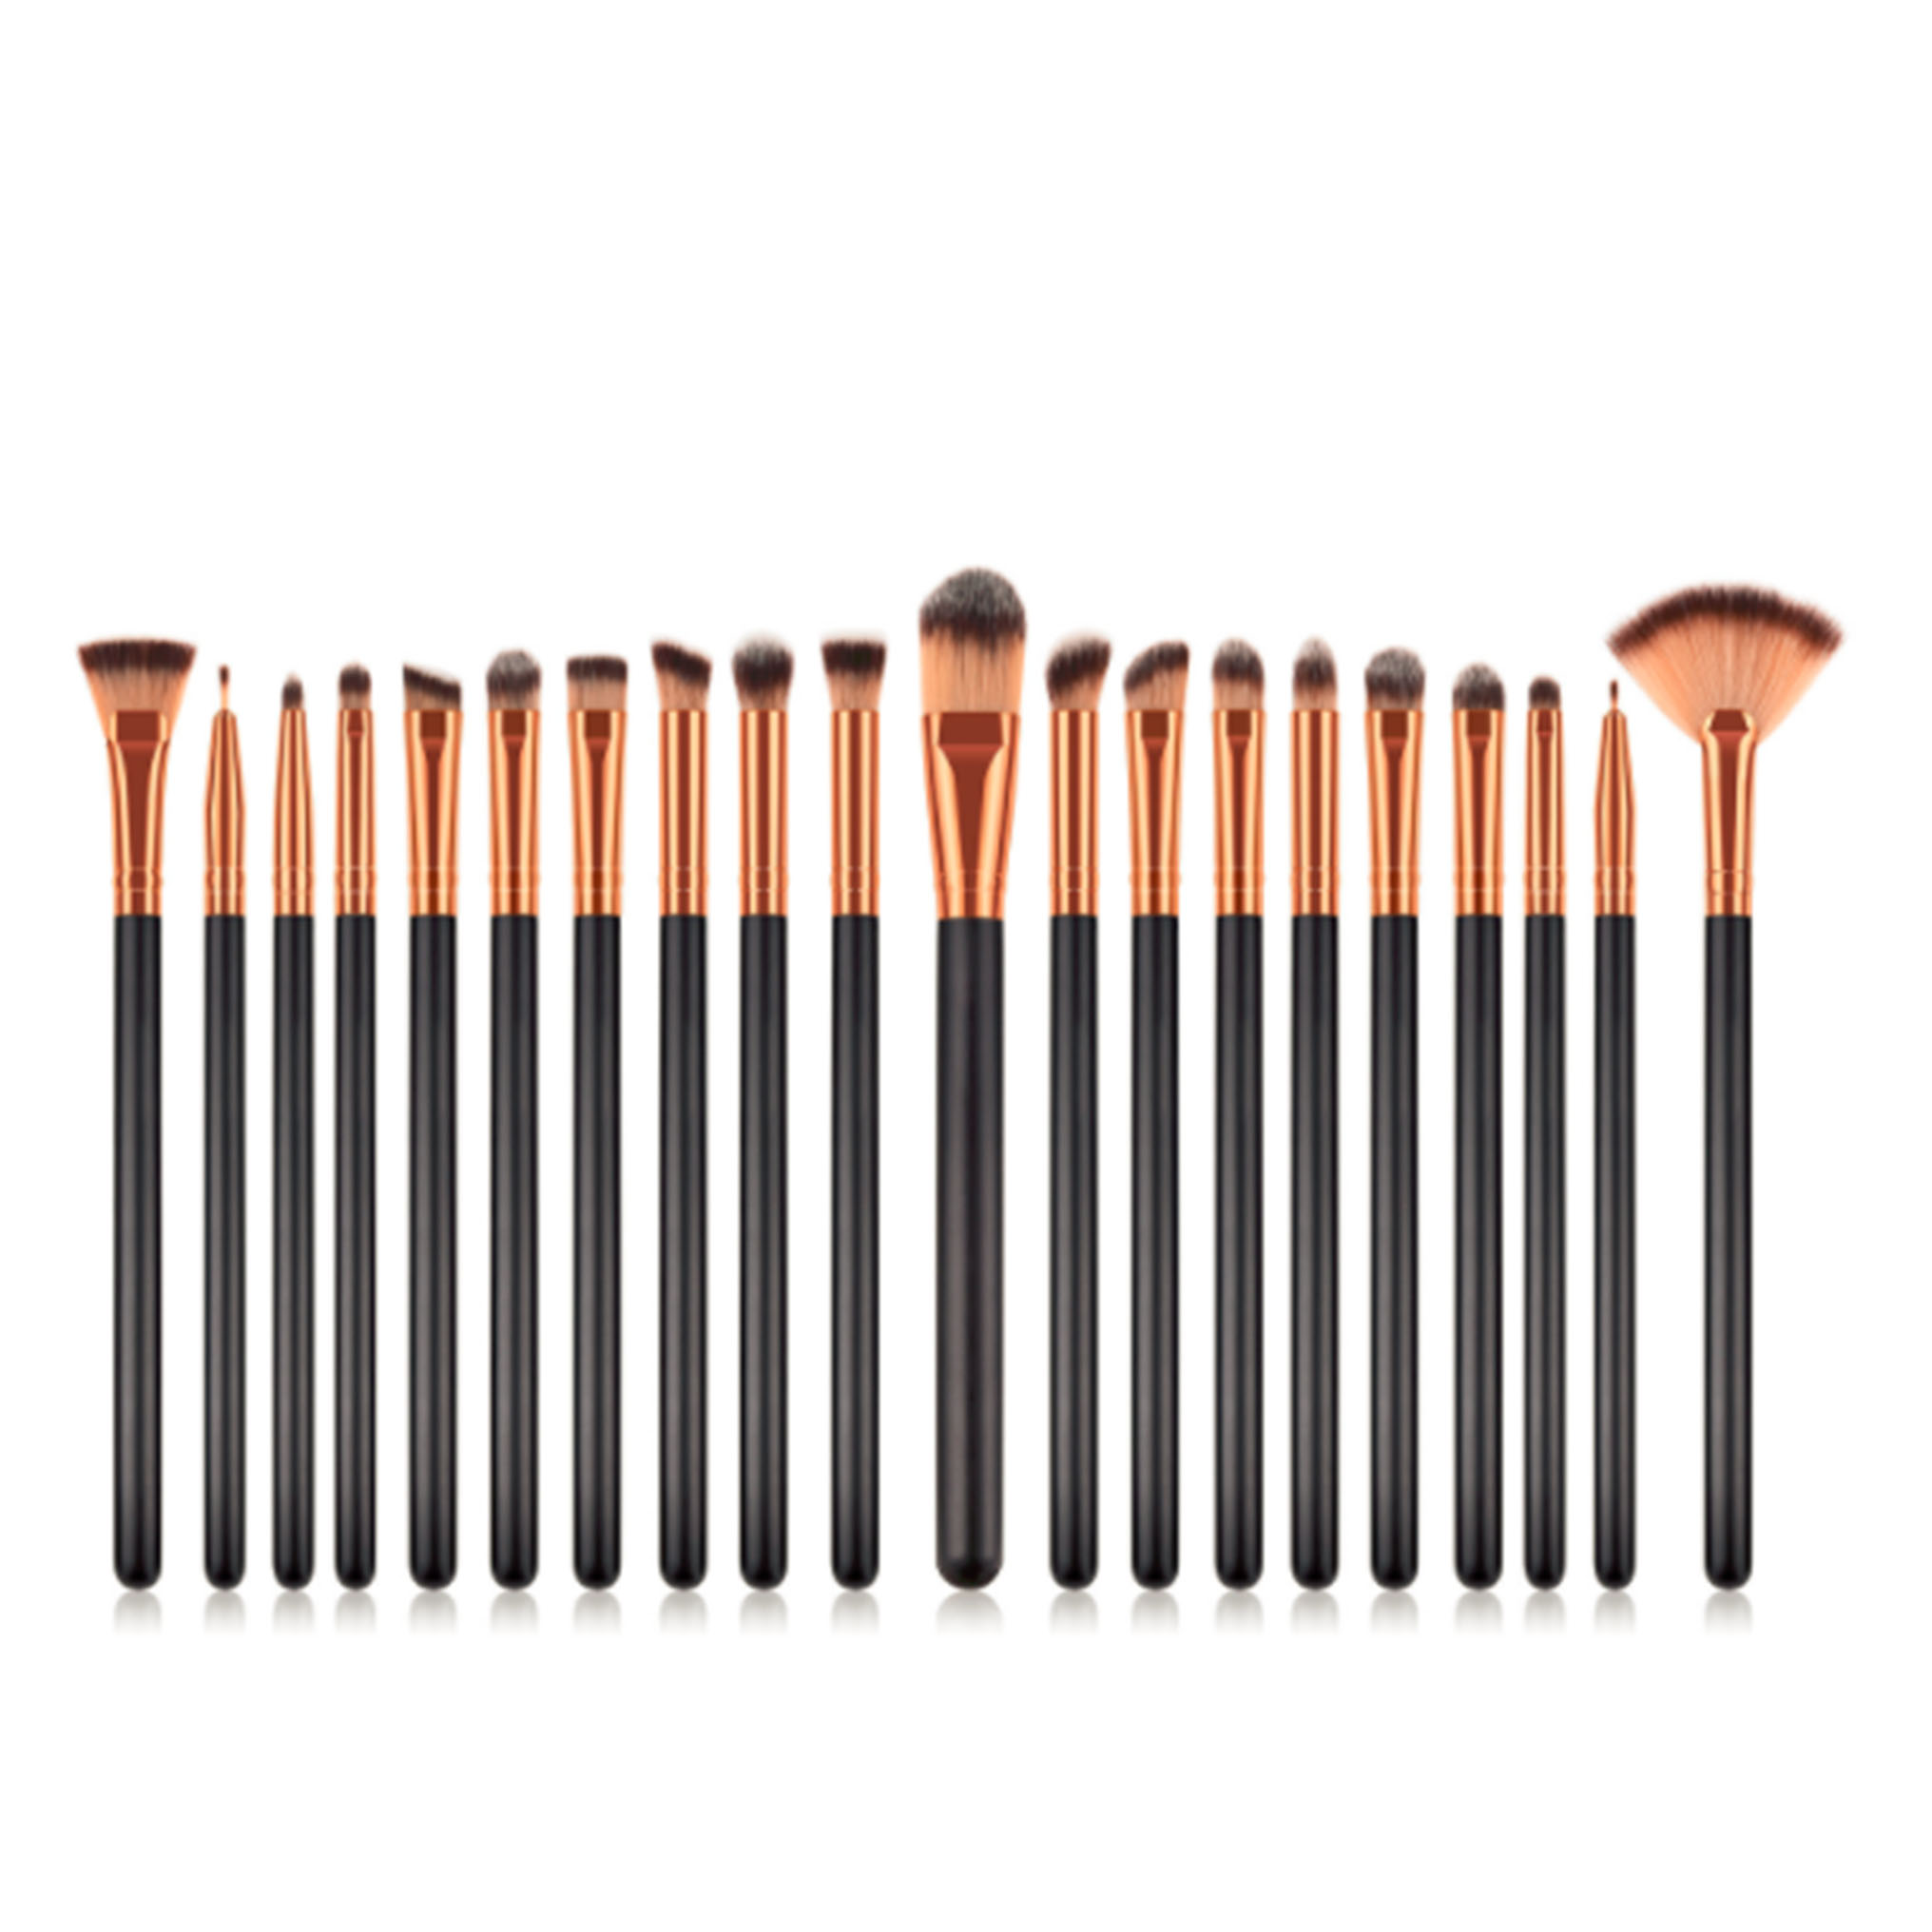 20pcs eye makeup <strong>brushes</strong> sets black gold <strong>best</strong> selling products 2019 in usa maquillaje